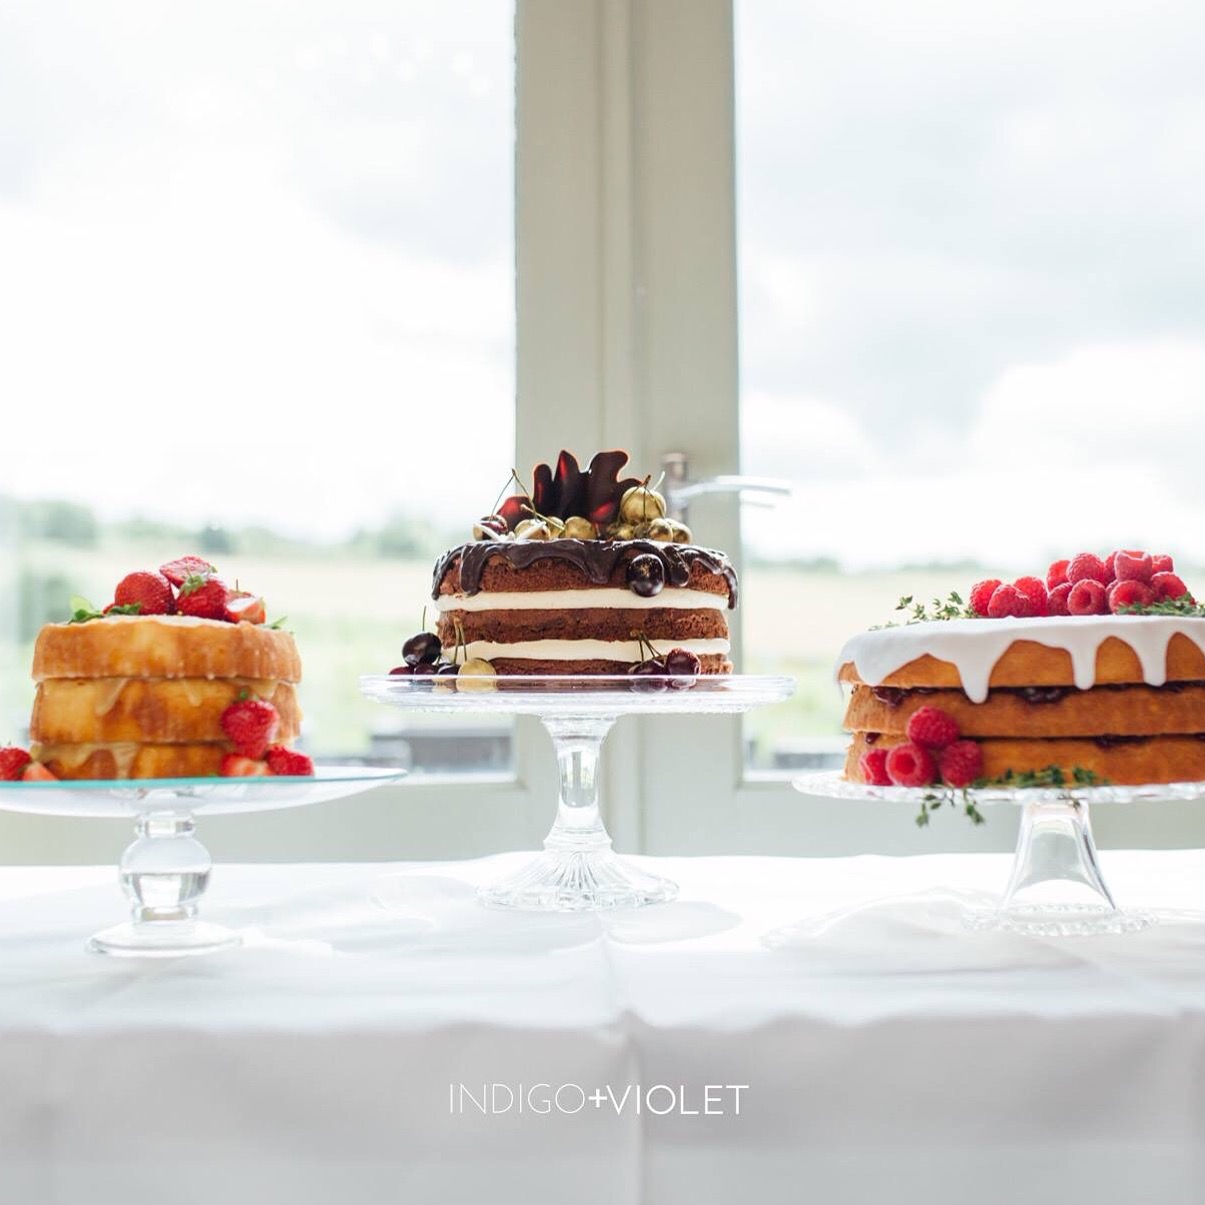 Three individual wedding cakes